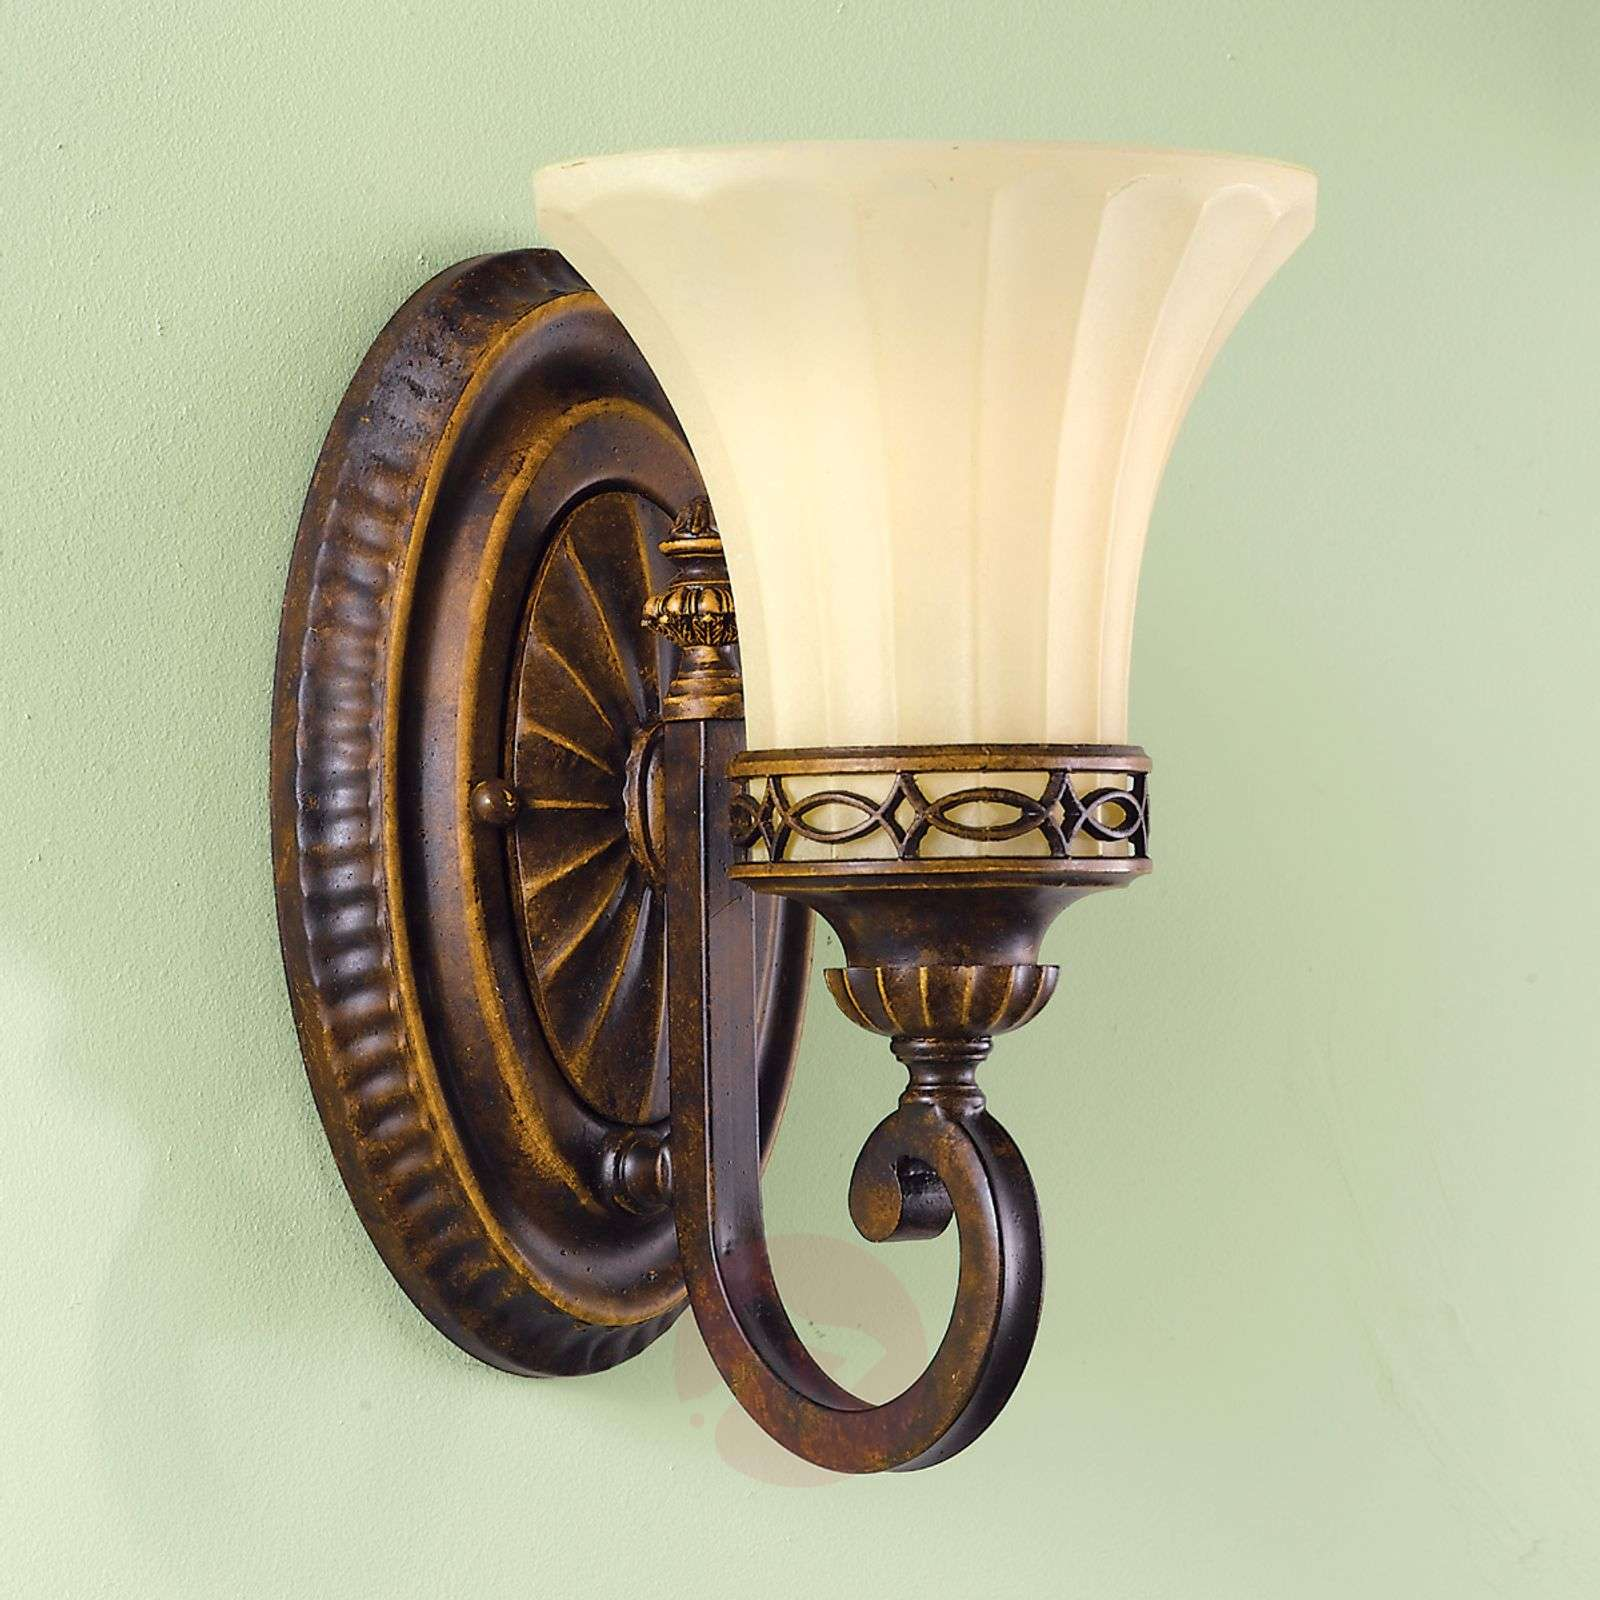 Drawing Room Wall Light Rustic-3048072-01